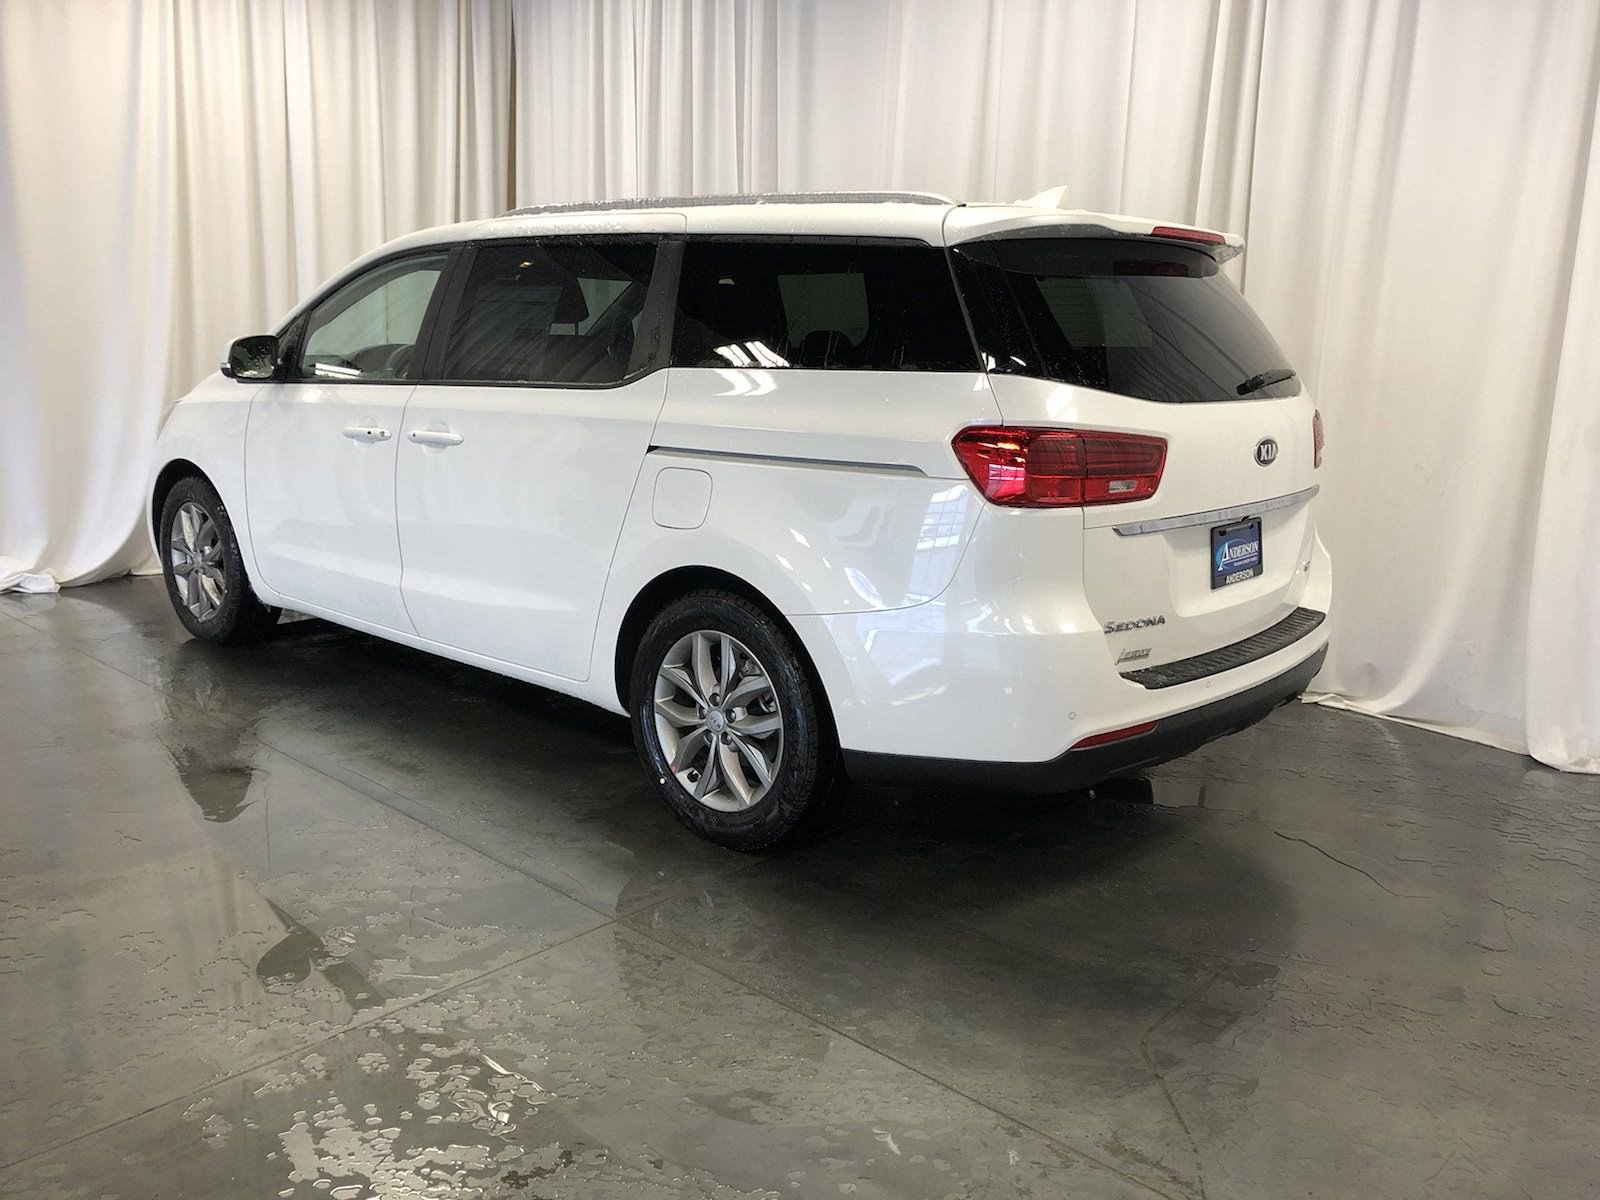 New 2020 Kia Sedona EX Mini-van for sale in St Joseph MO